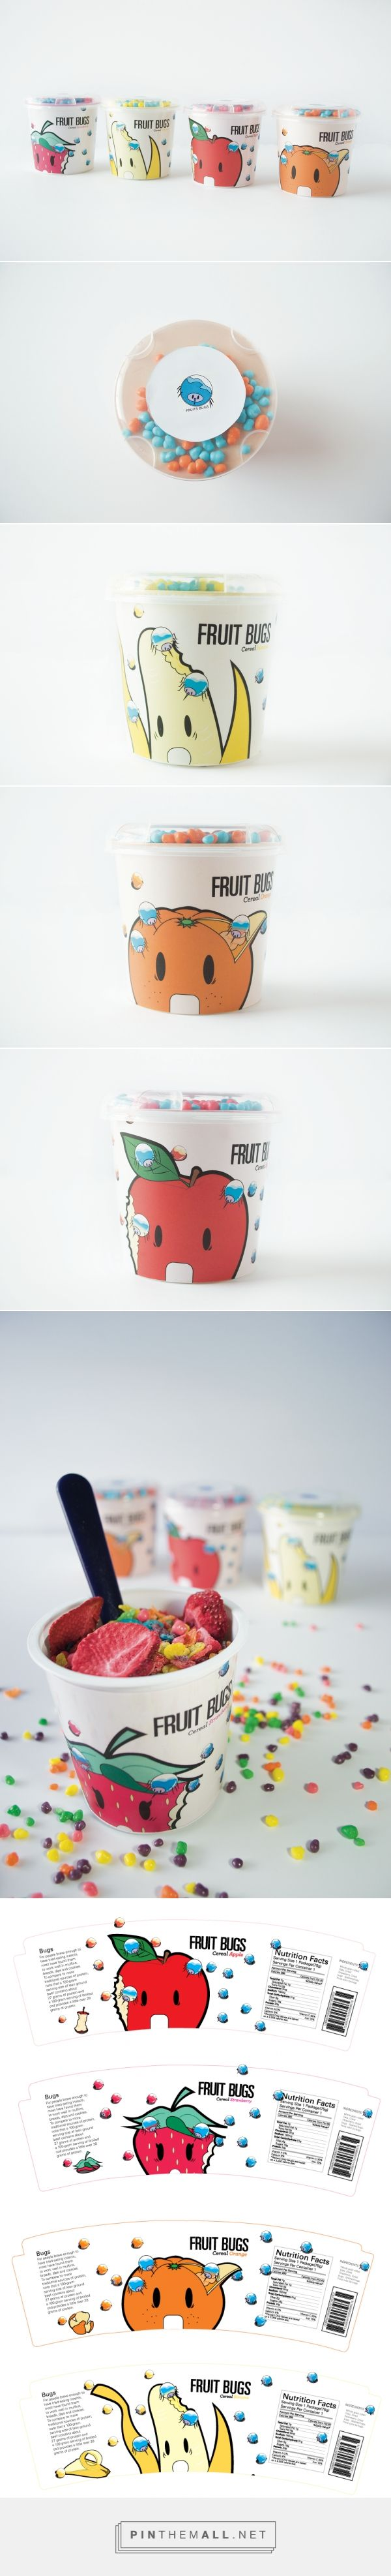 Graphic design, illustration and packaging for FRUIT BUGS on Behance by Kaito Watanabe 静岡市 (Shizuoka), Japan curated by Packaging Diva PD. The cutest cereal packaging for the smile file : )